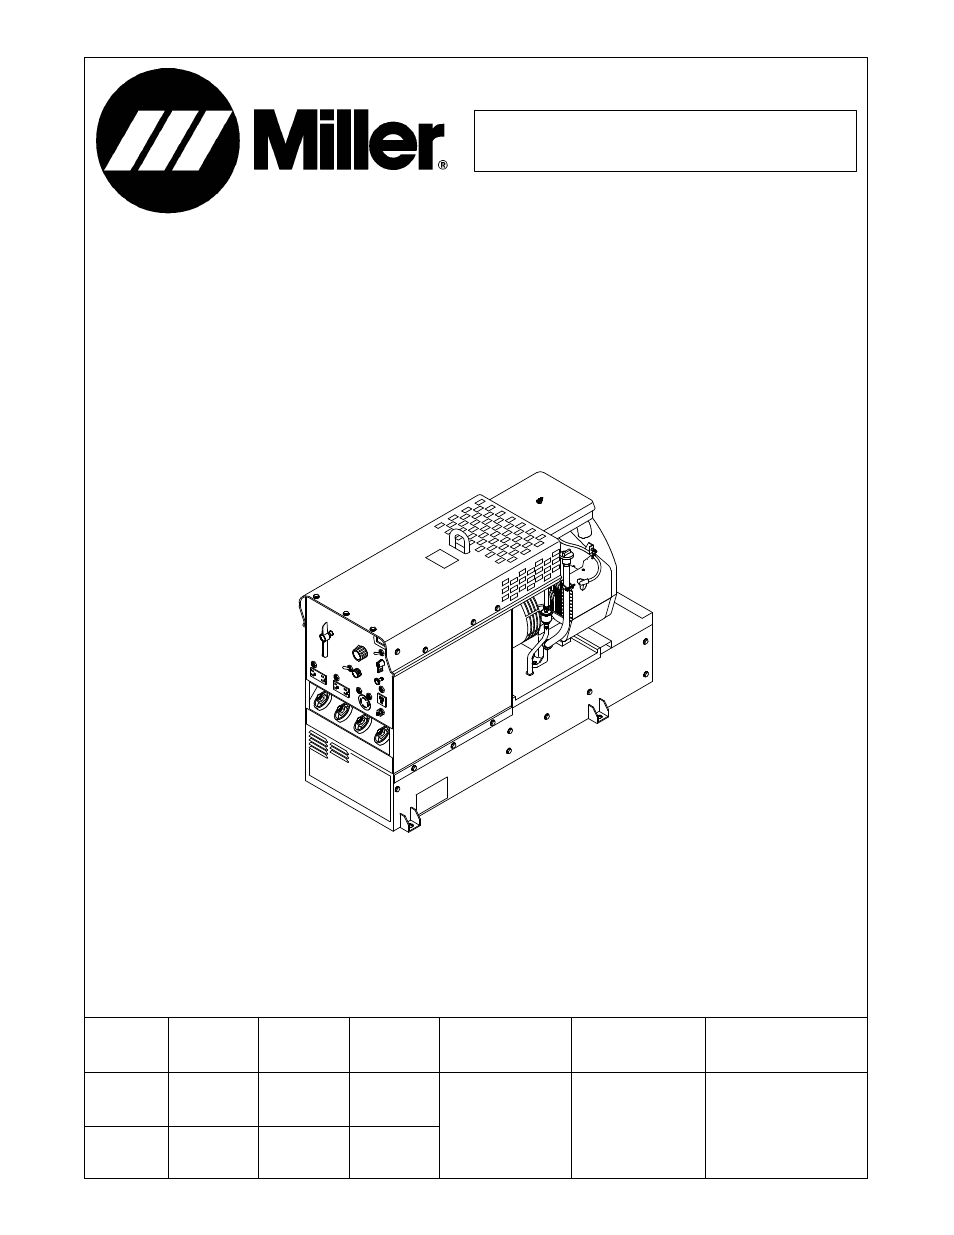 Lincoln Spool Gun Wiring Diagram • Wiring Diagram For Free